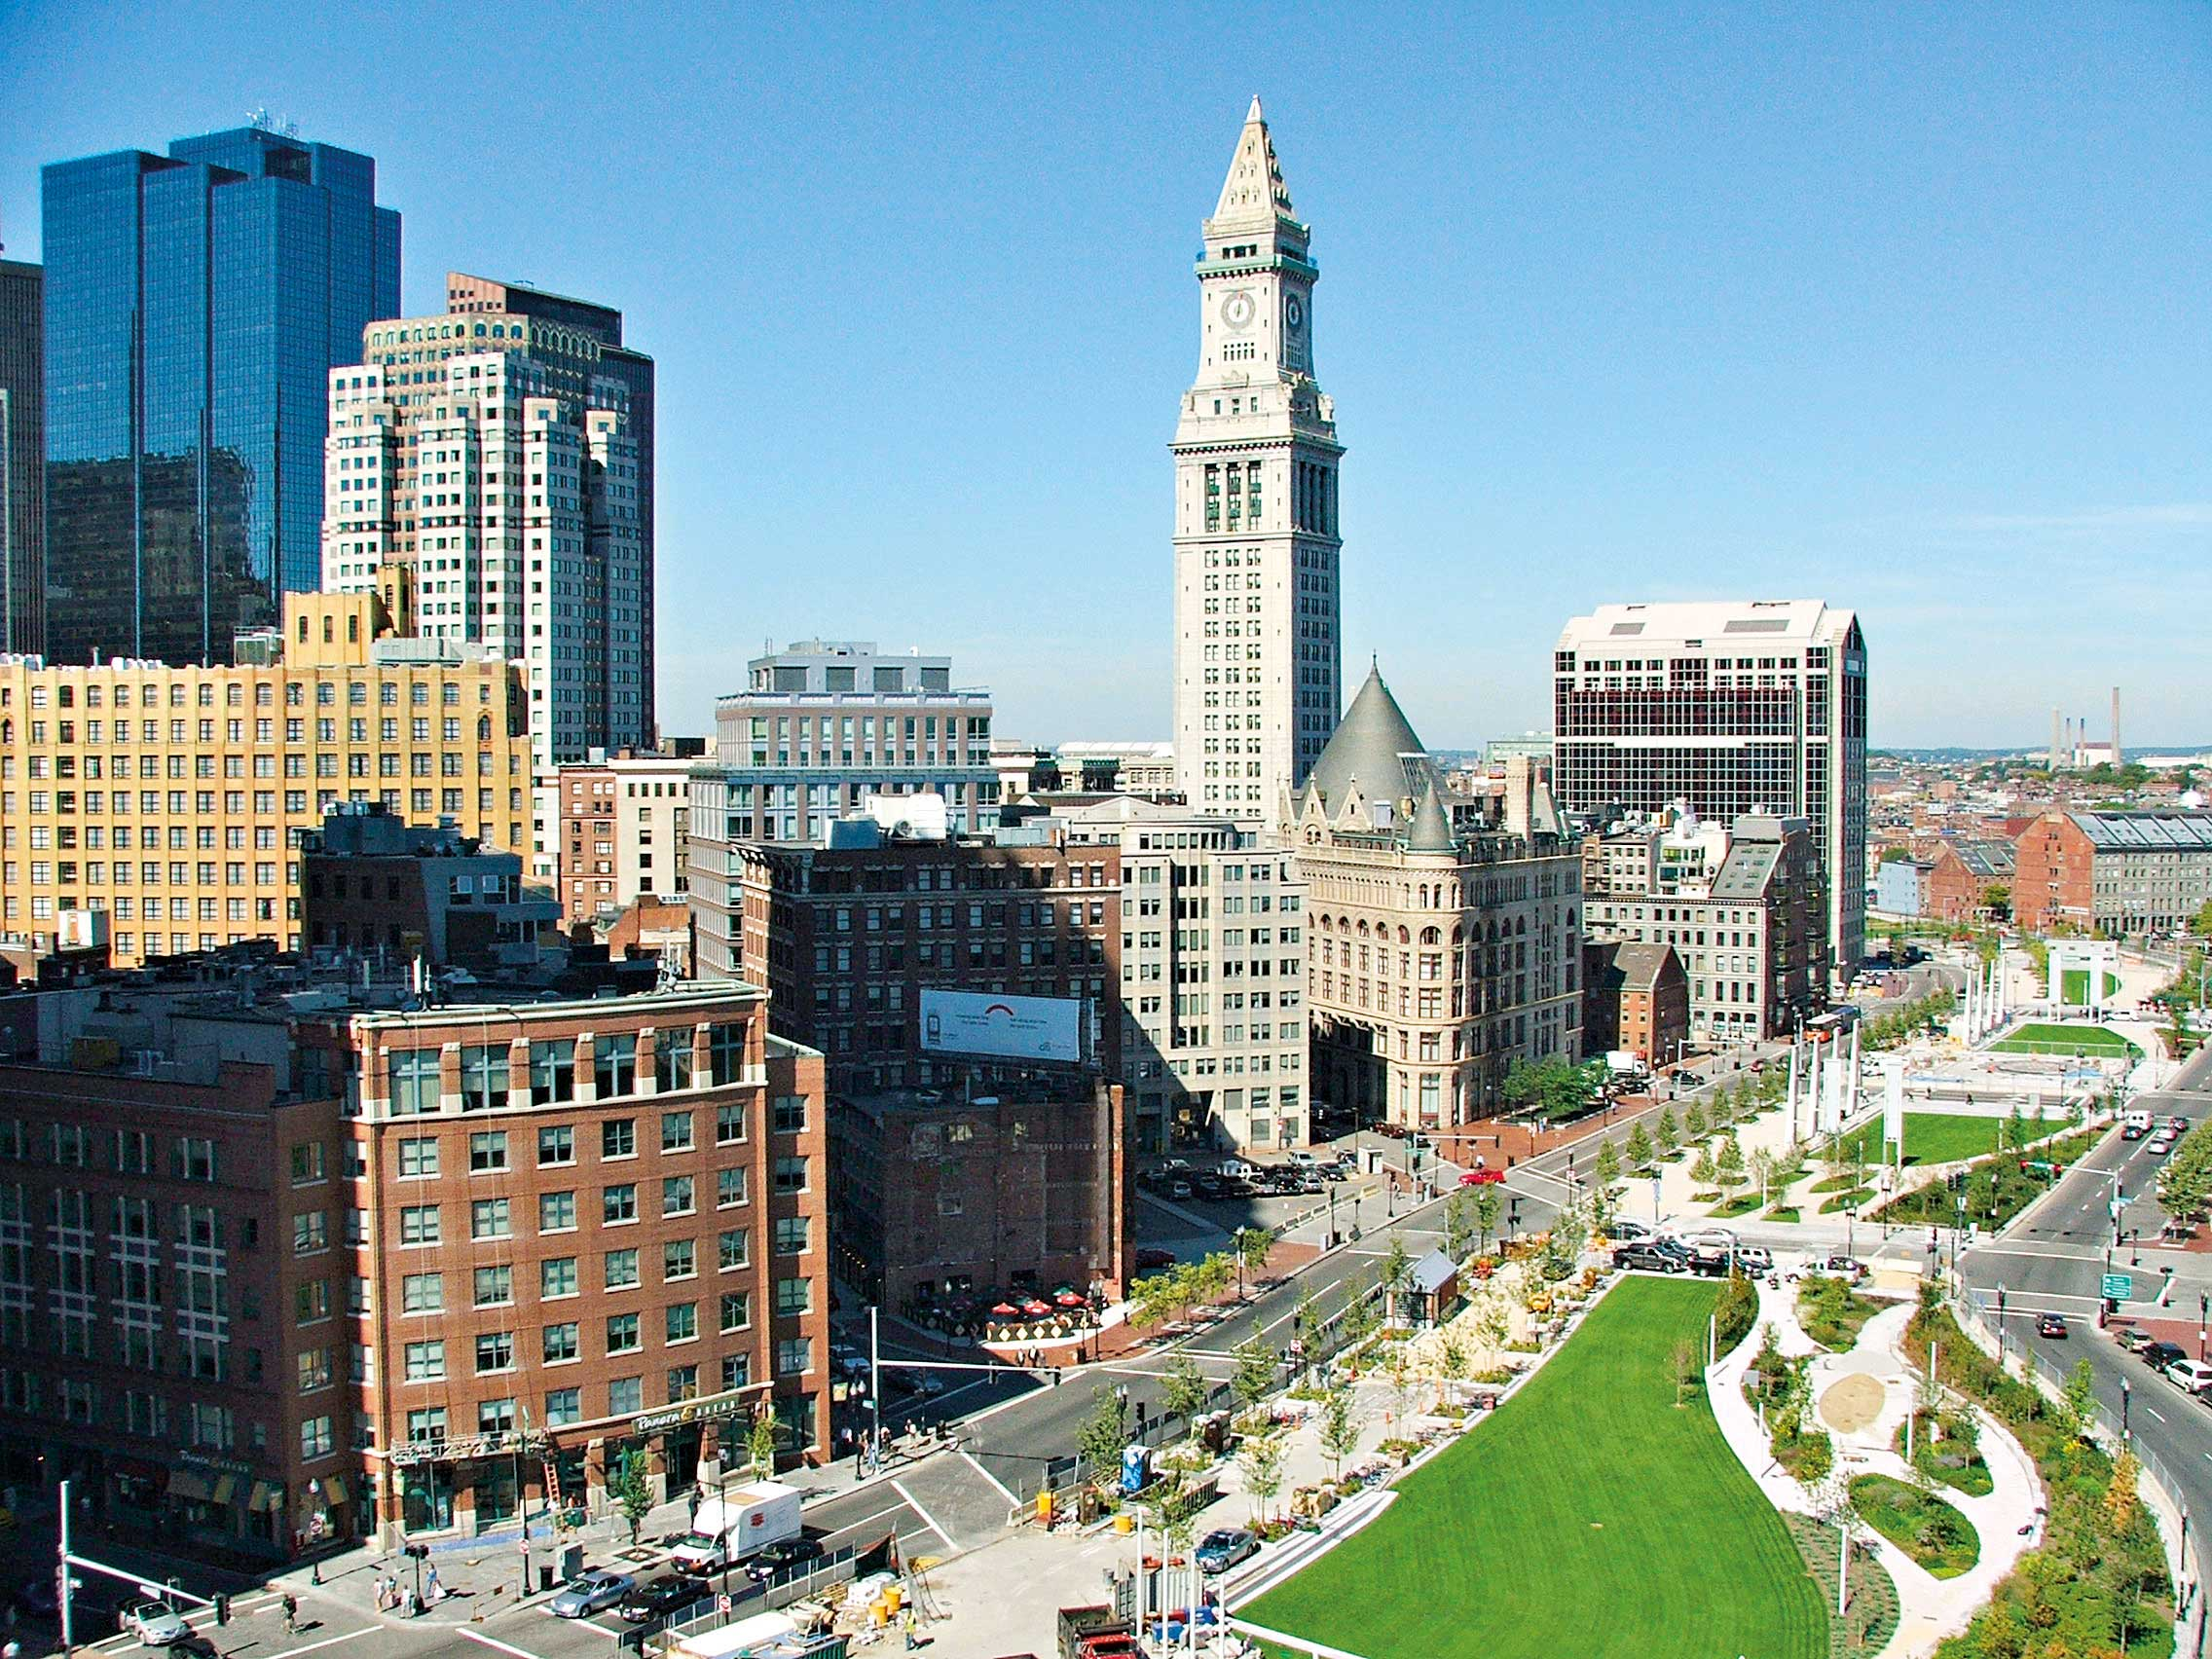 Boston's skyline includes the 469ft Custom House Tower